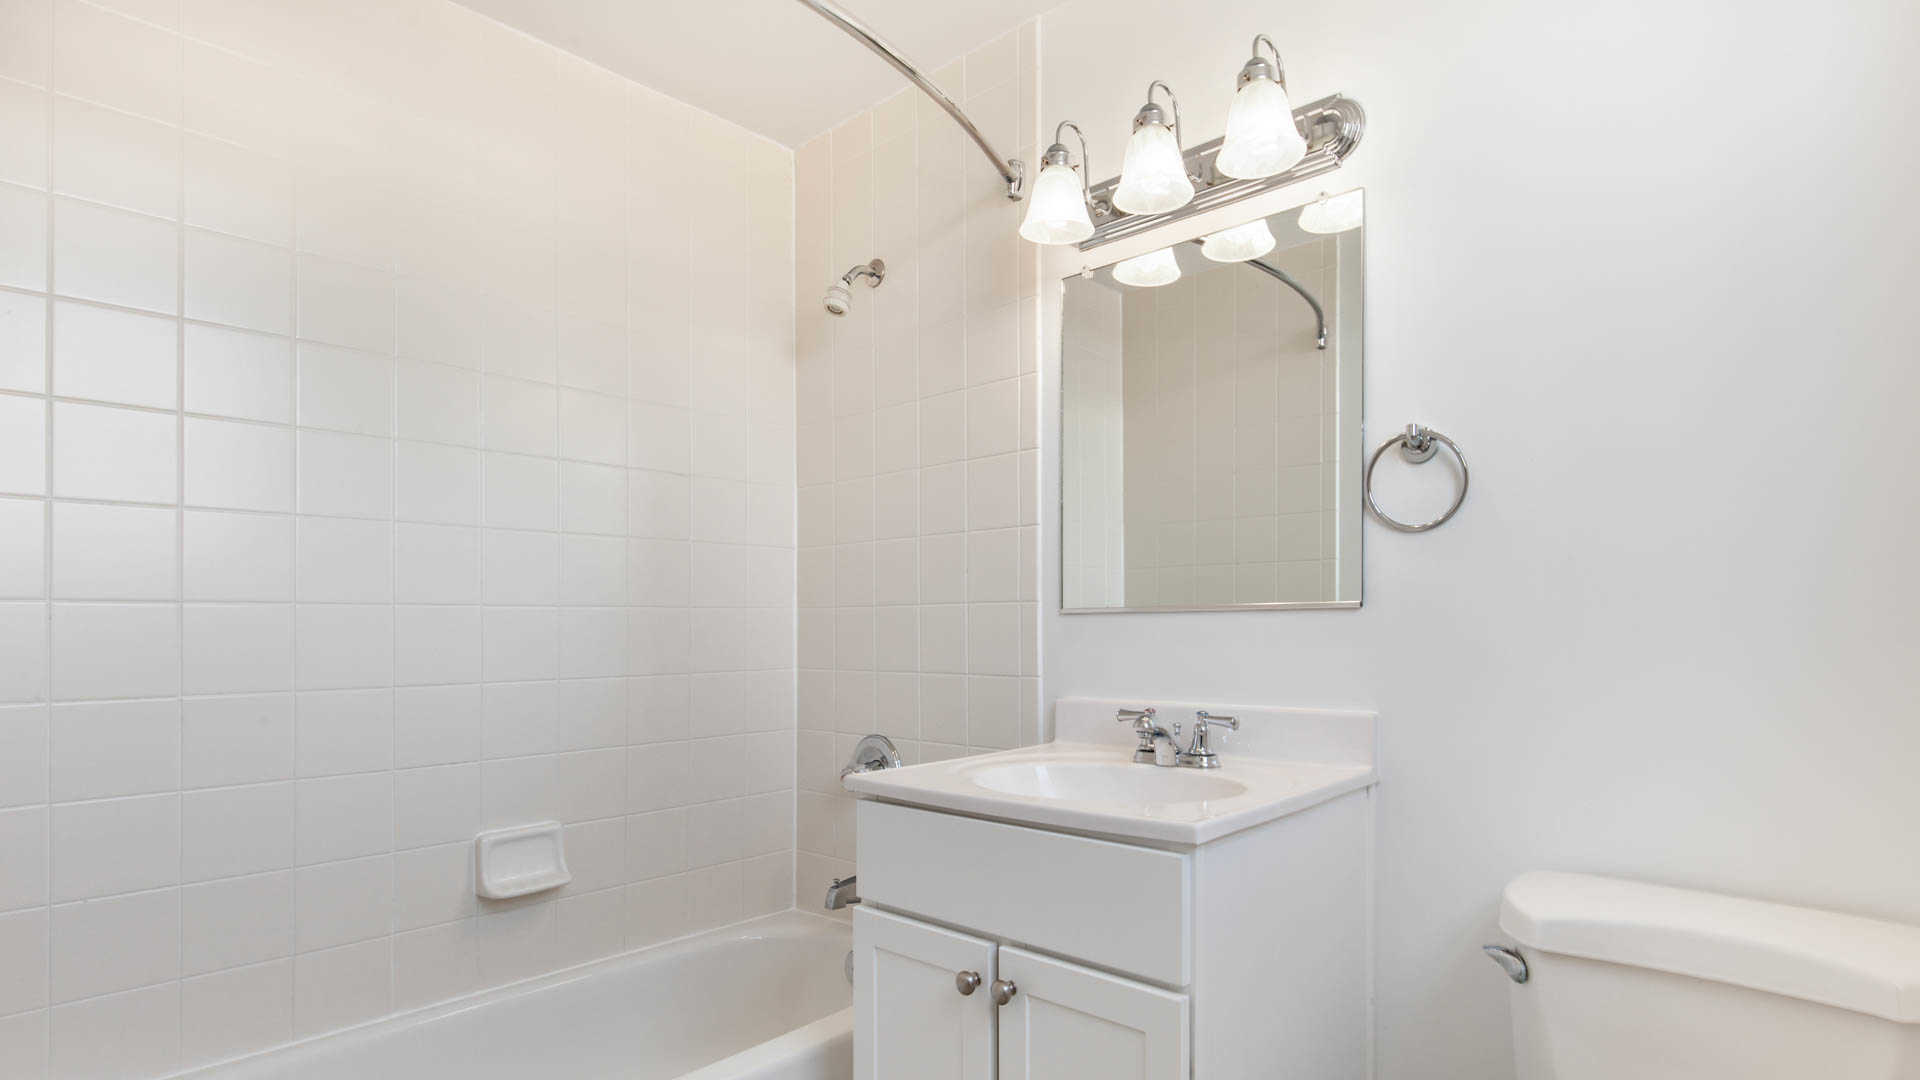 Portside towers apartments bathroom